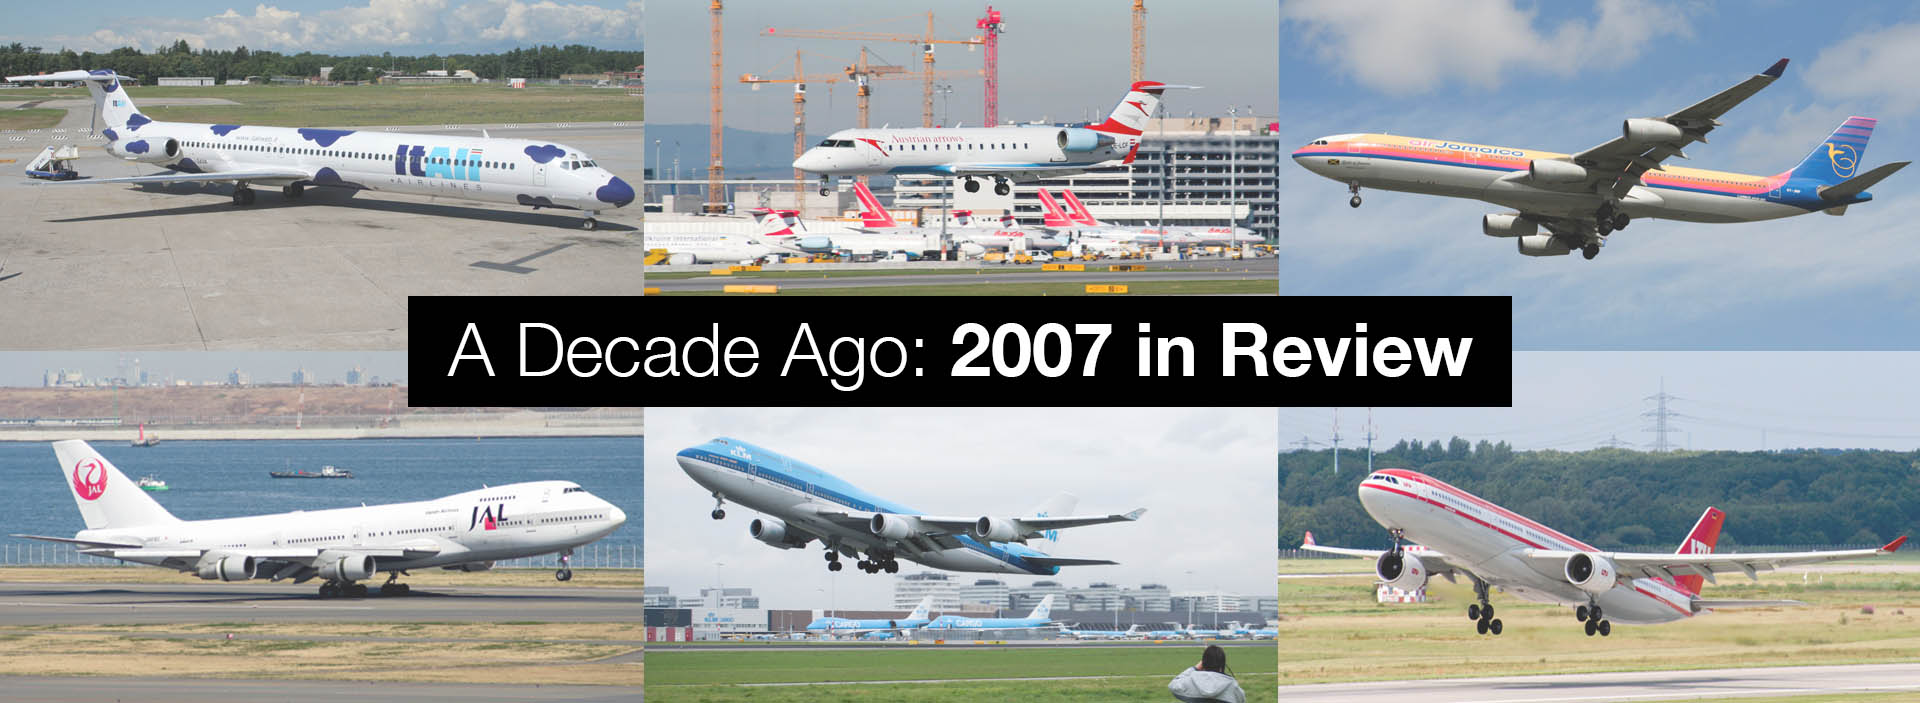 A Decade Ago - 2007 in Review: My First DSLR & A Year of Euro Spotting Trips